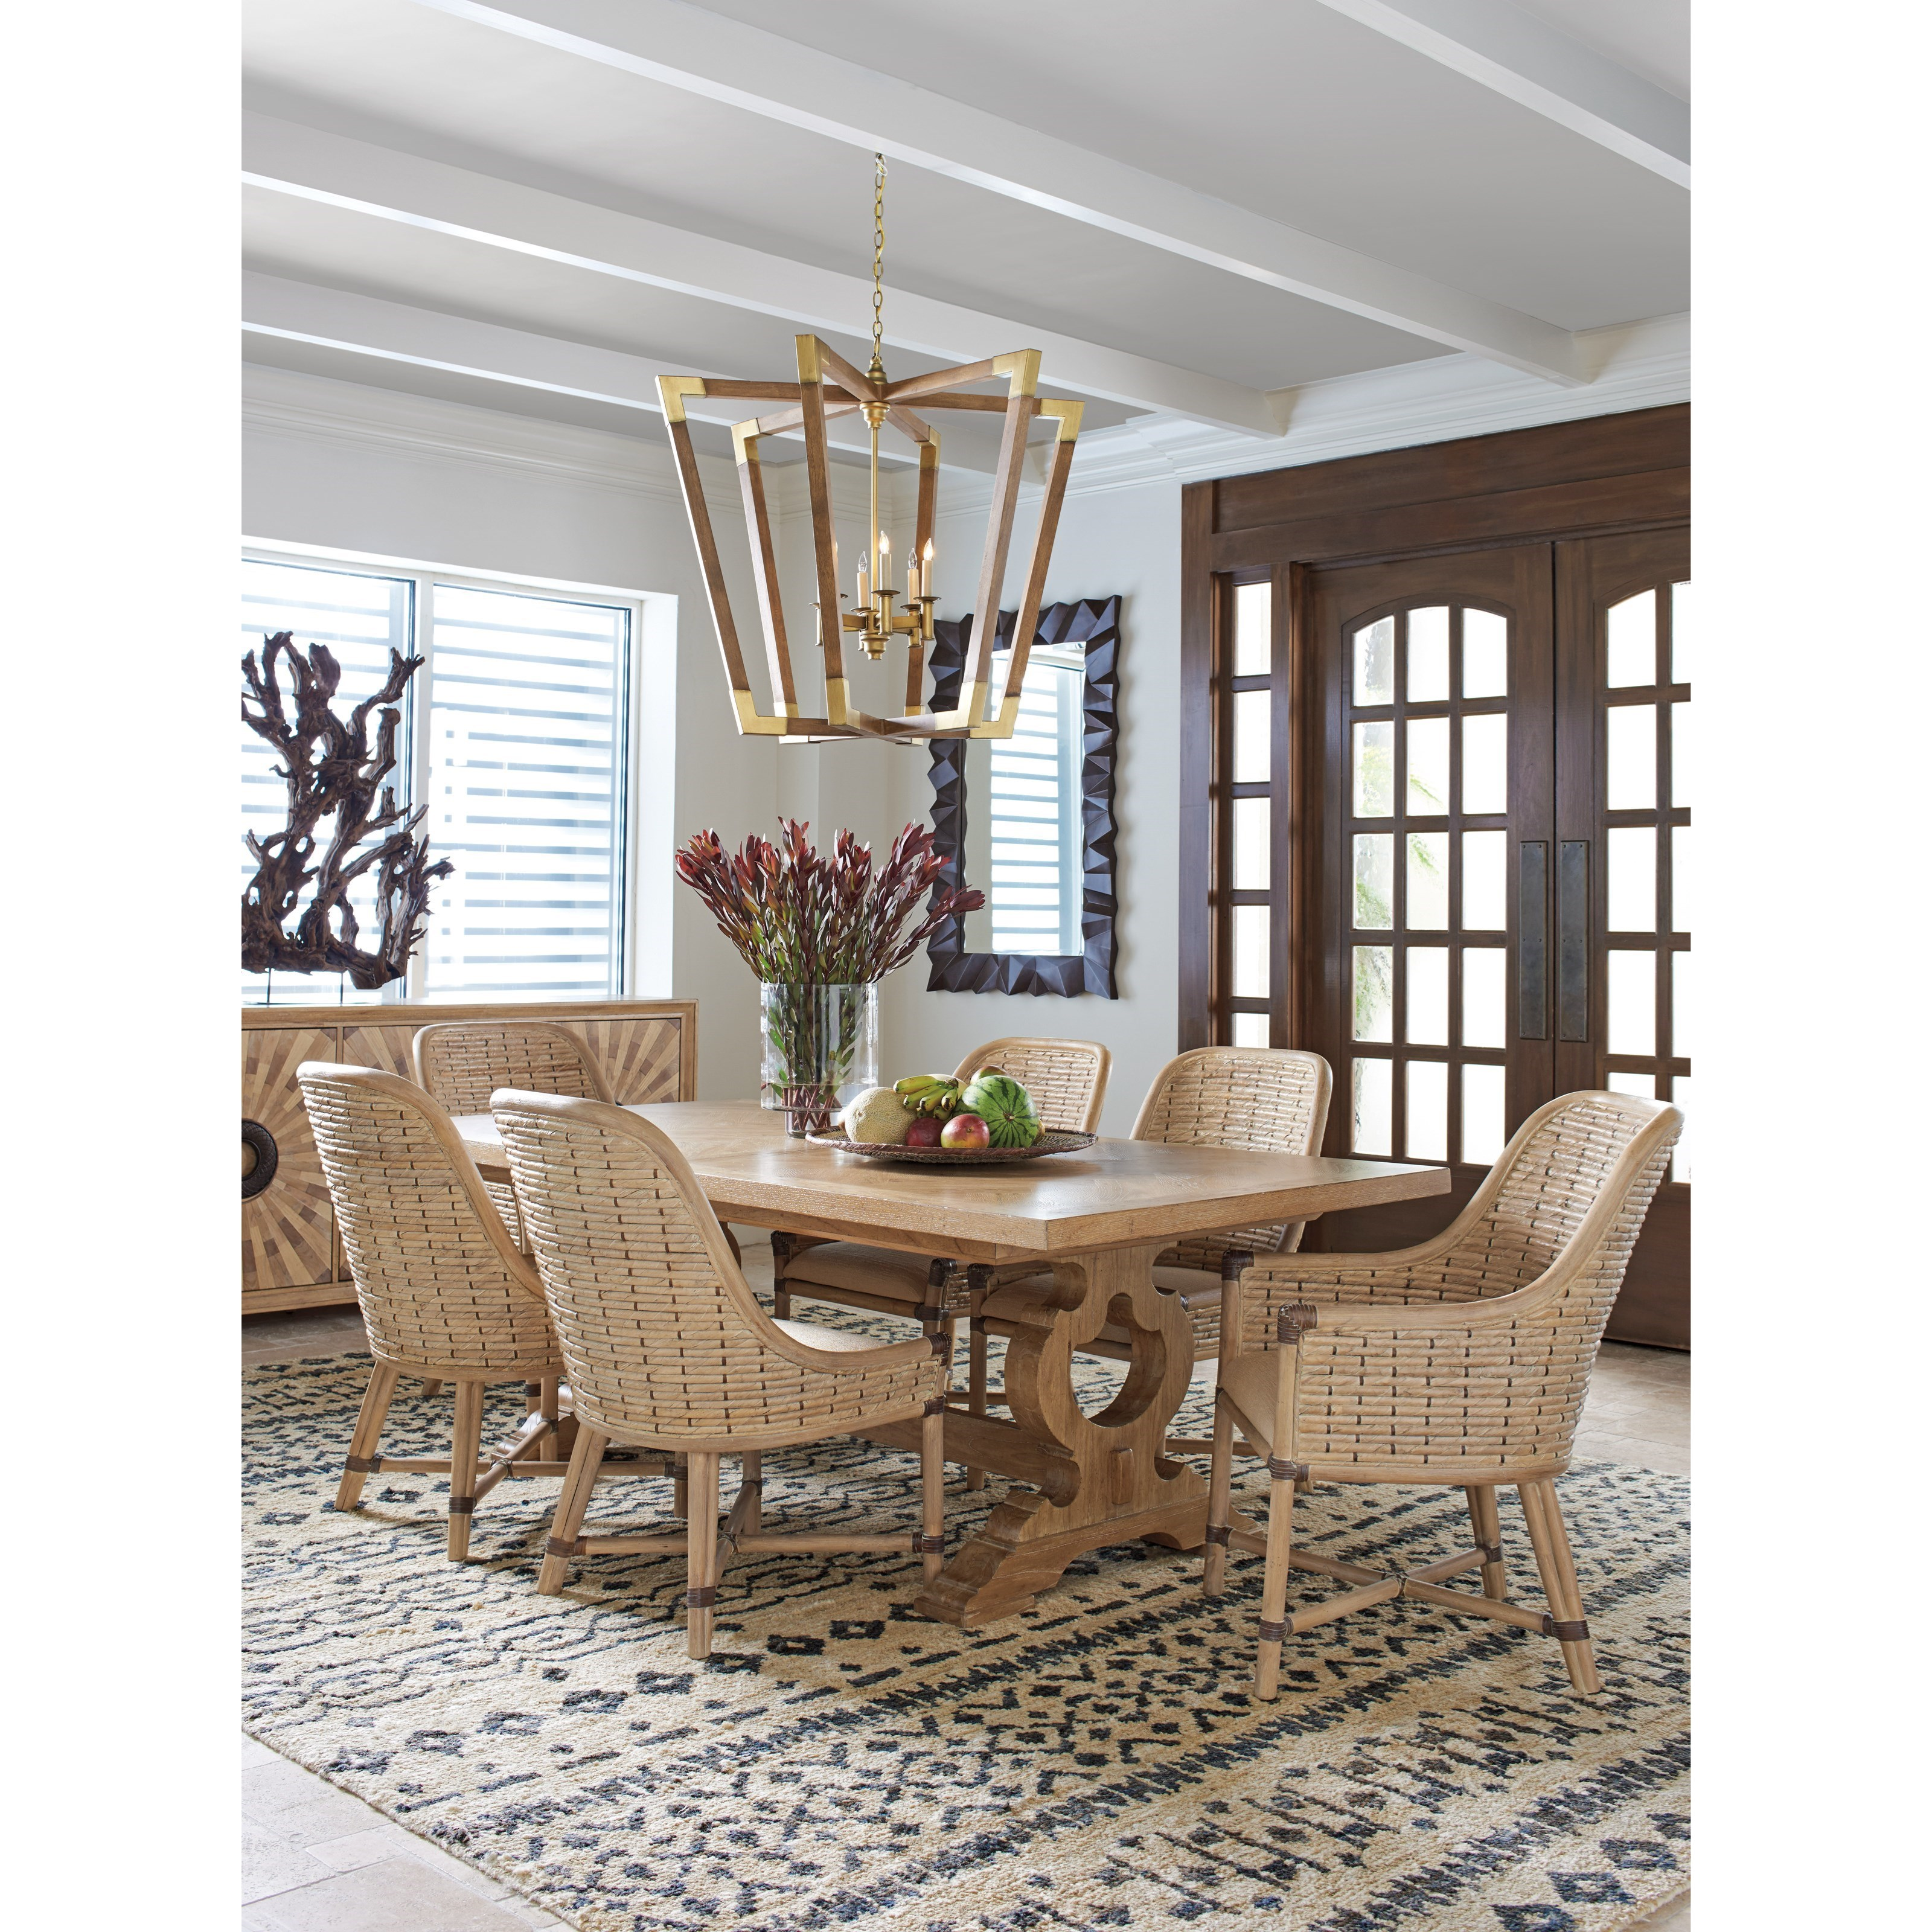 Los Altos Formal Dining Group by Tommy Bahama Home at Baer's Furniture